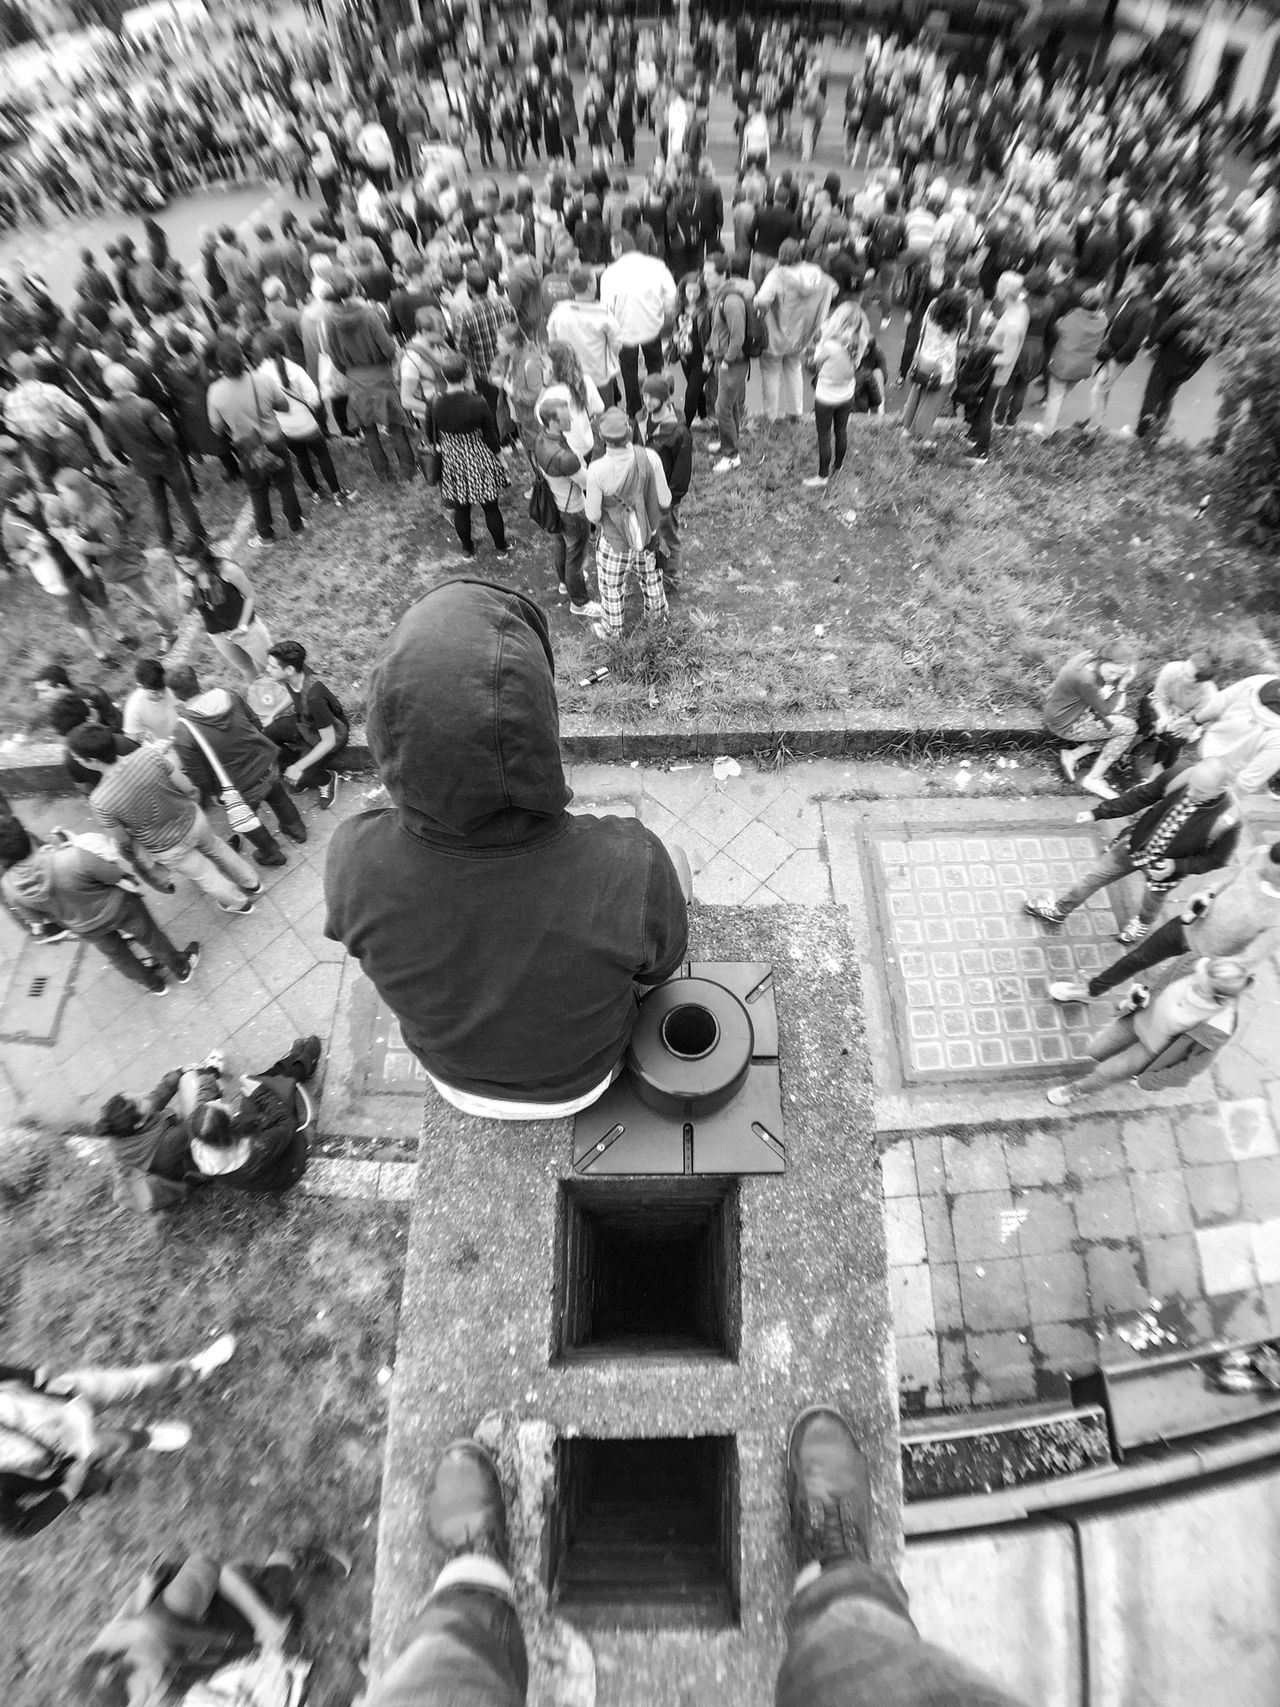 Looking down on the crowd Adult Adults Only Berlin Black And White Day High Angle View Karneval Der Kulturen Men Nature Outdoors People Real People Rear View Sitting